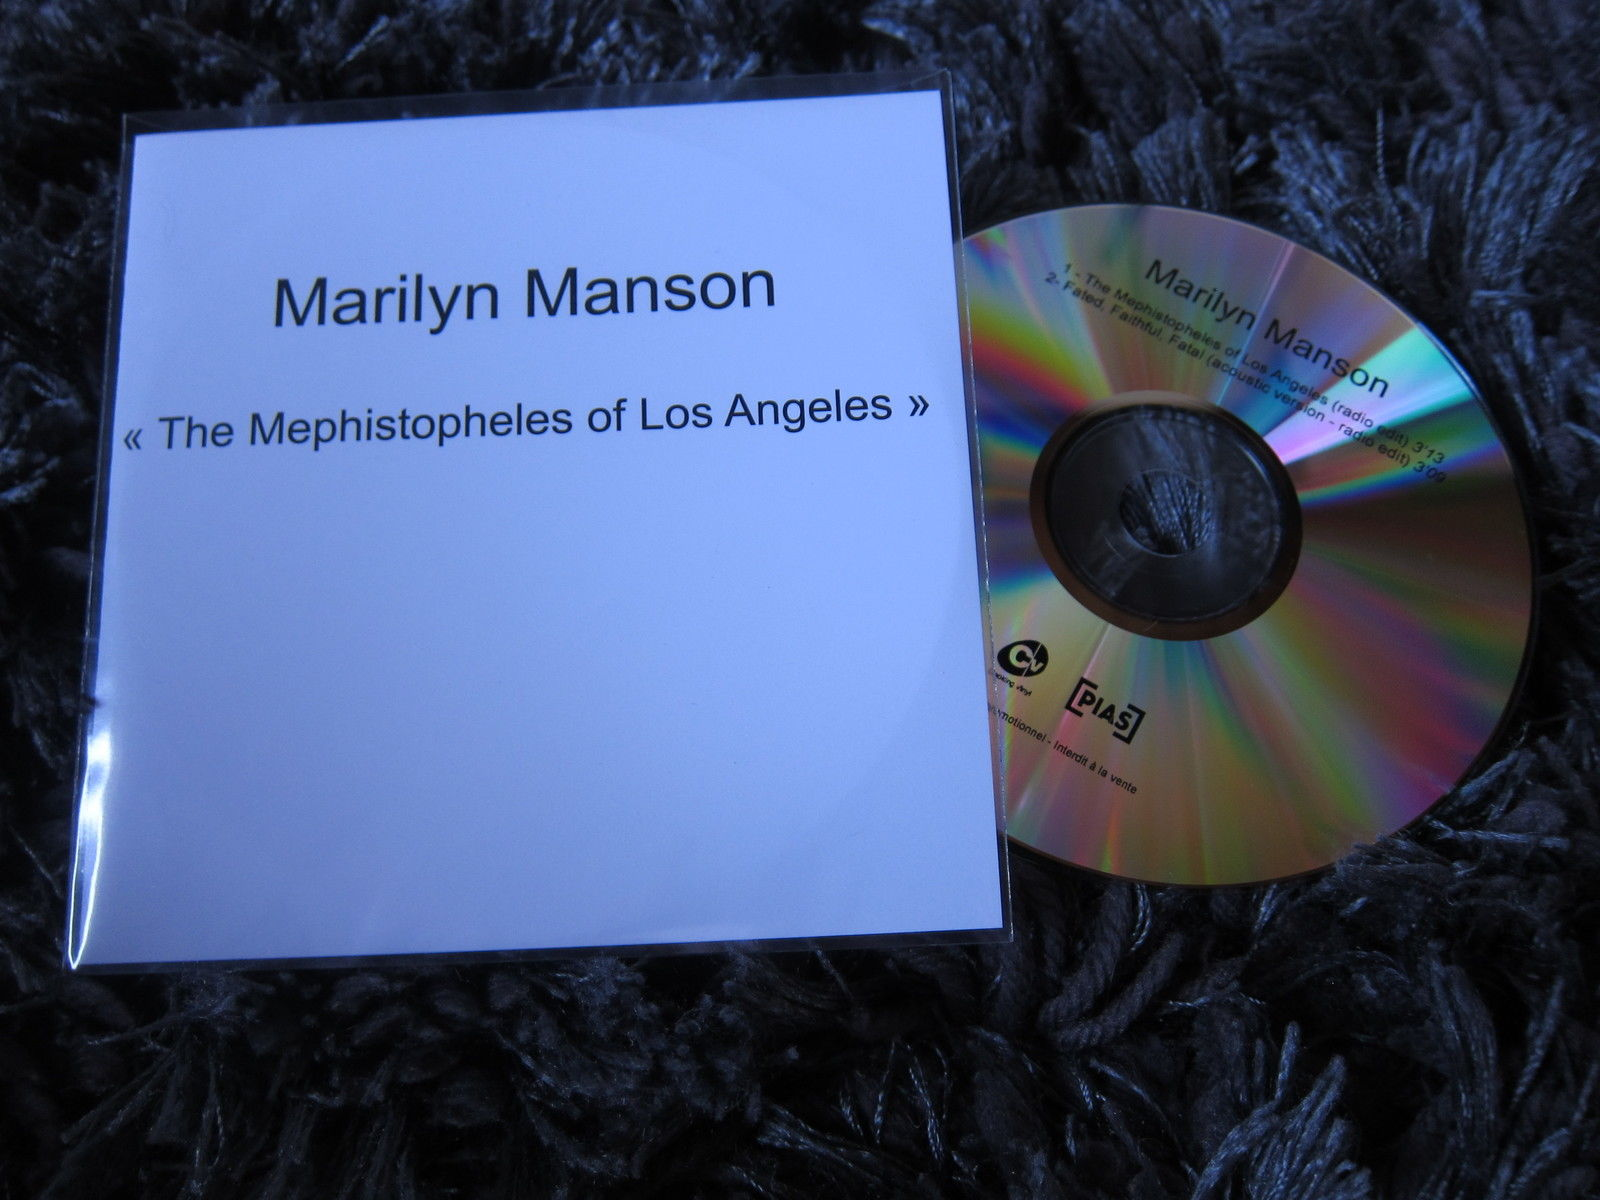 The Mephistopheles of Los Angeles cover